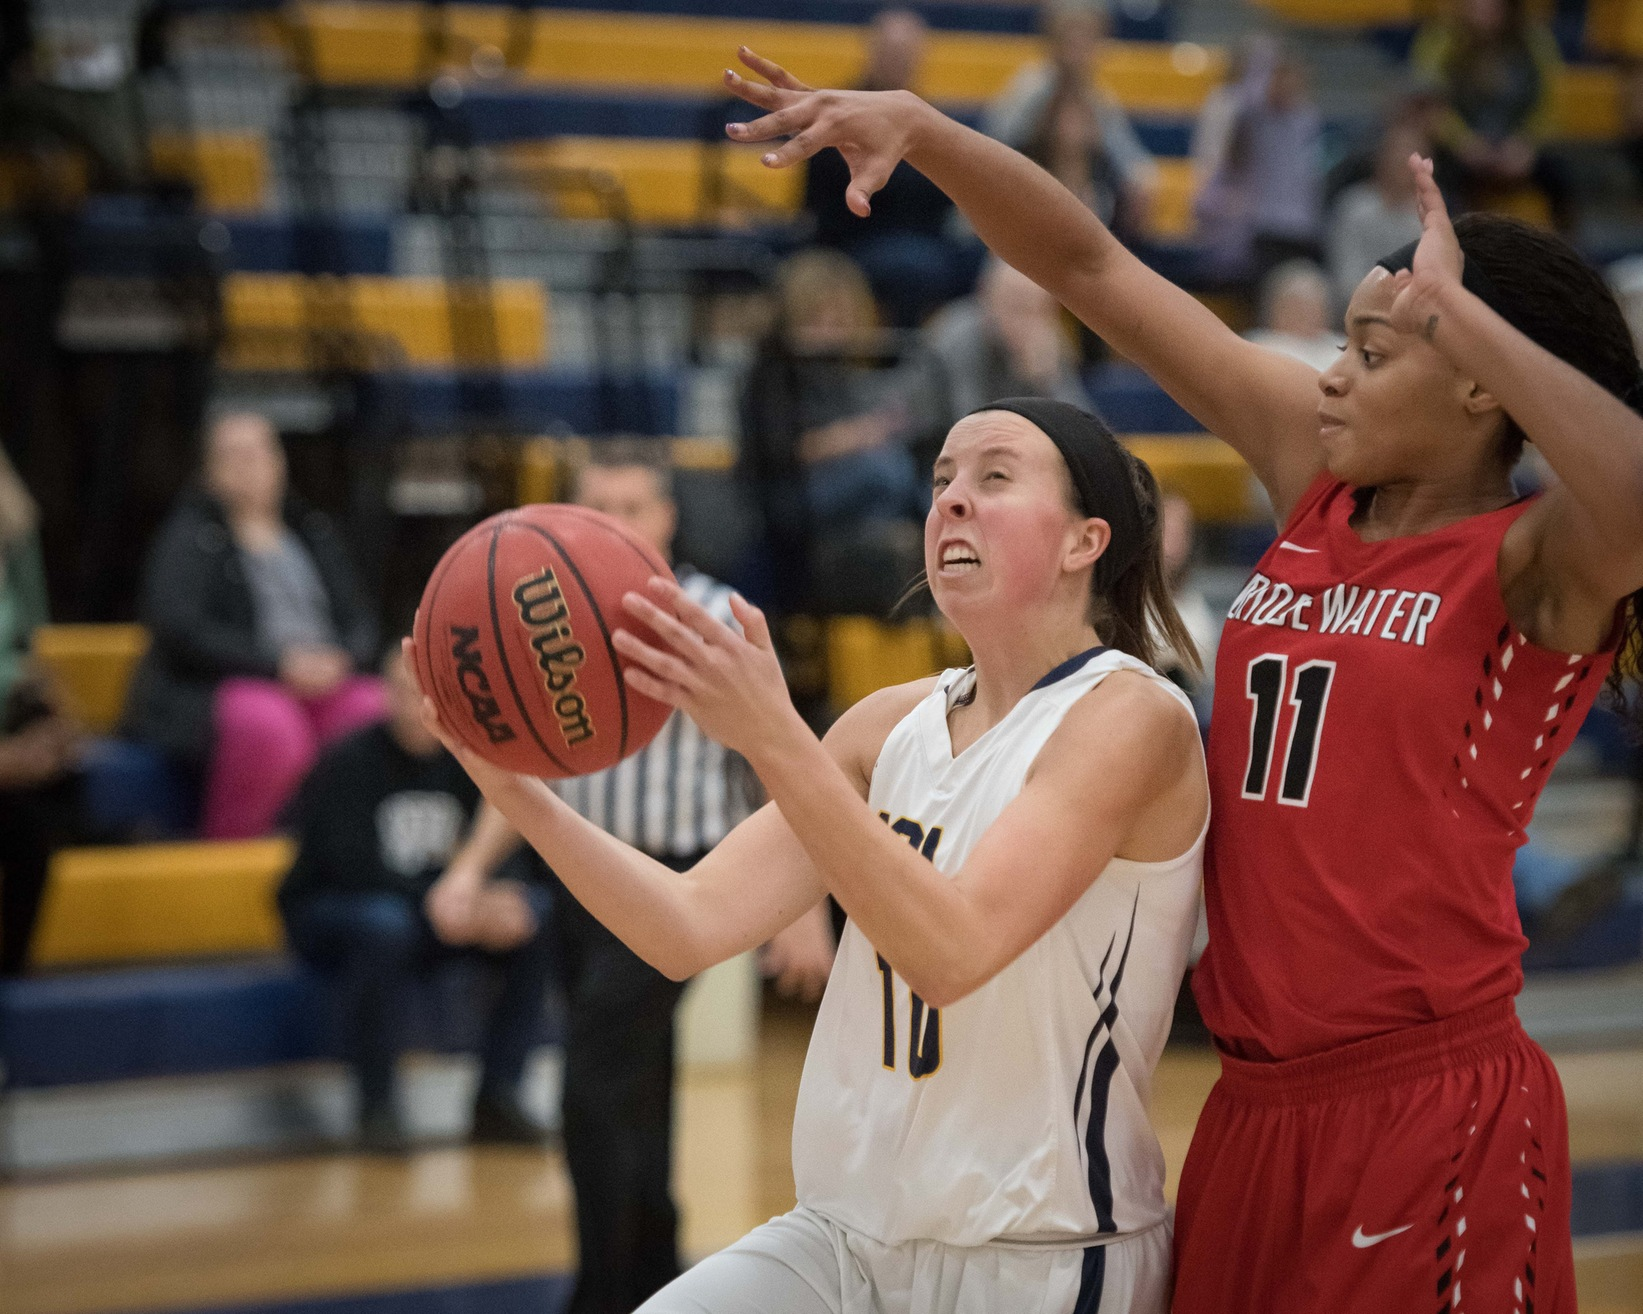 Women's Basketball tripped up at home by hot shooting Falcons 81-76